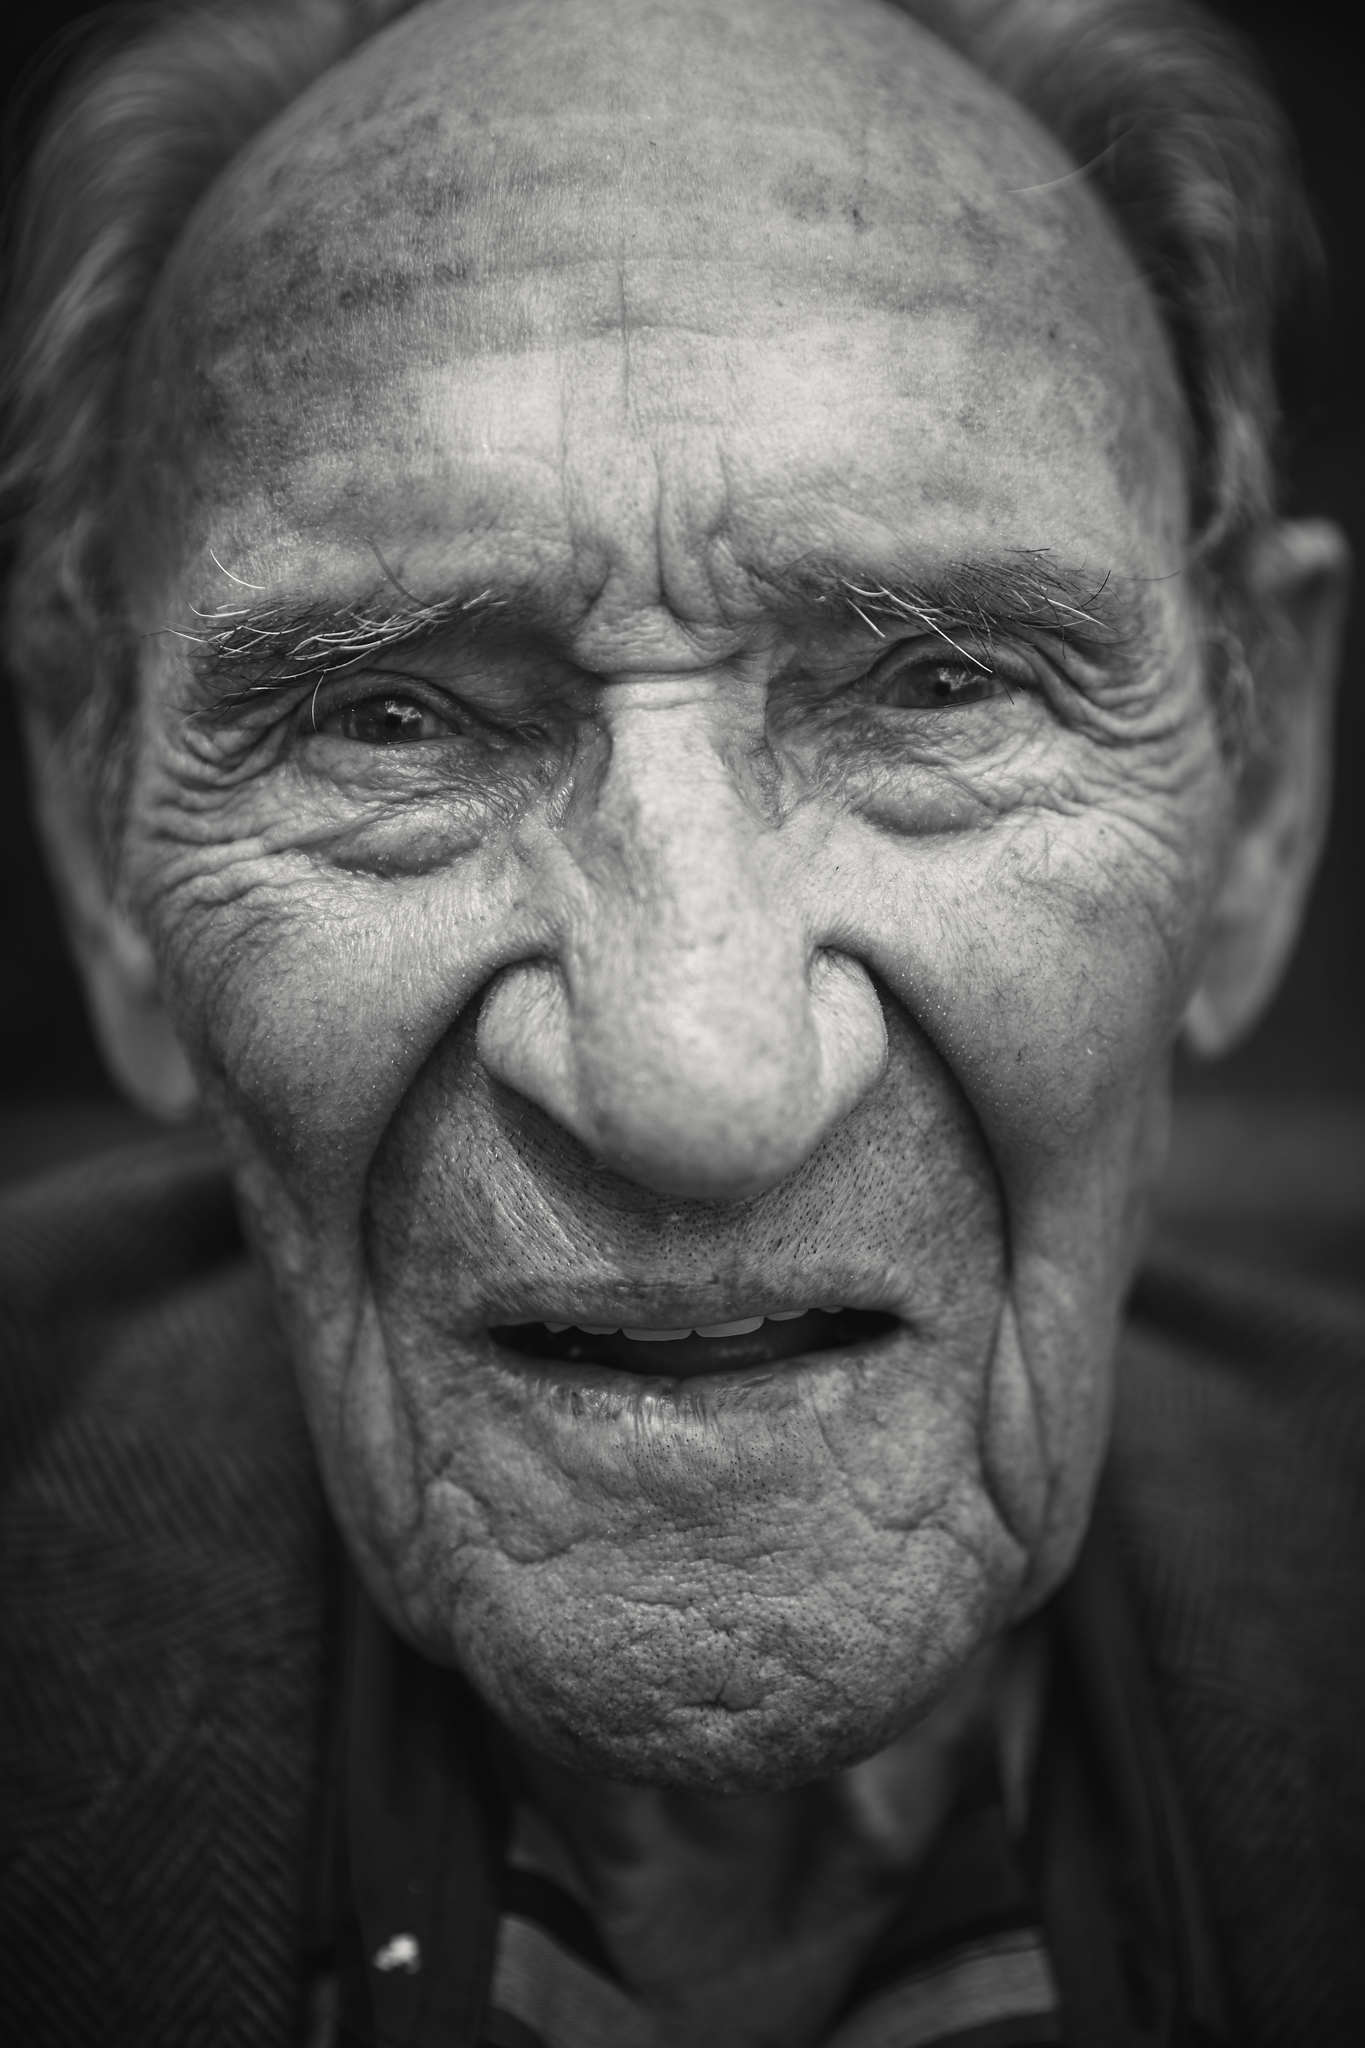 D-DAY VETERANS, FRANCE - JUNE 6: Willard LaCounte (96 yrs old), from Montana, a former member of the